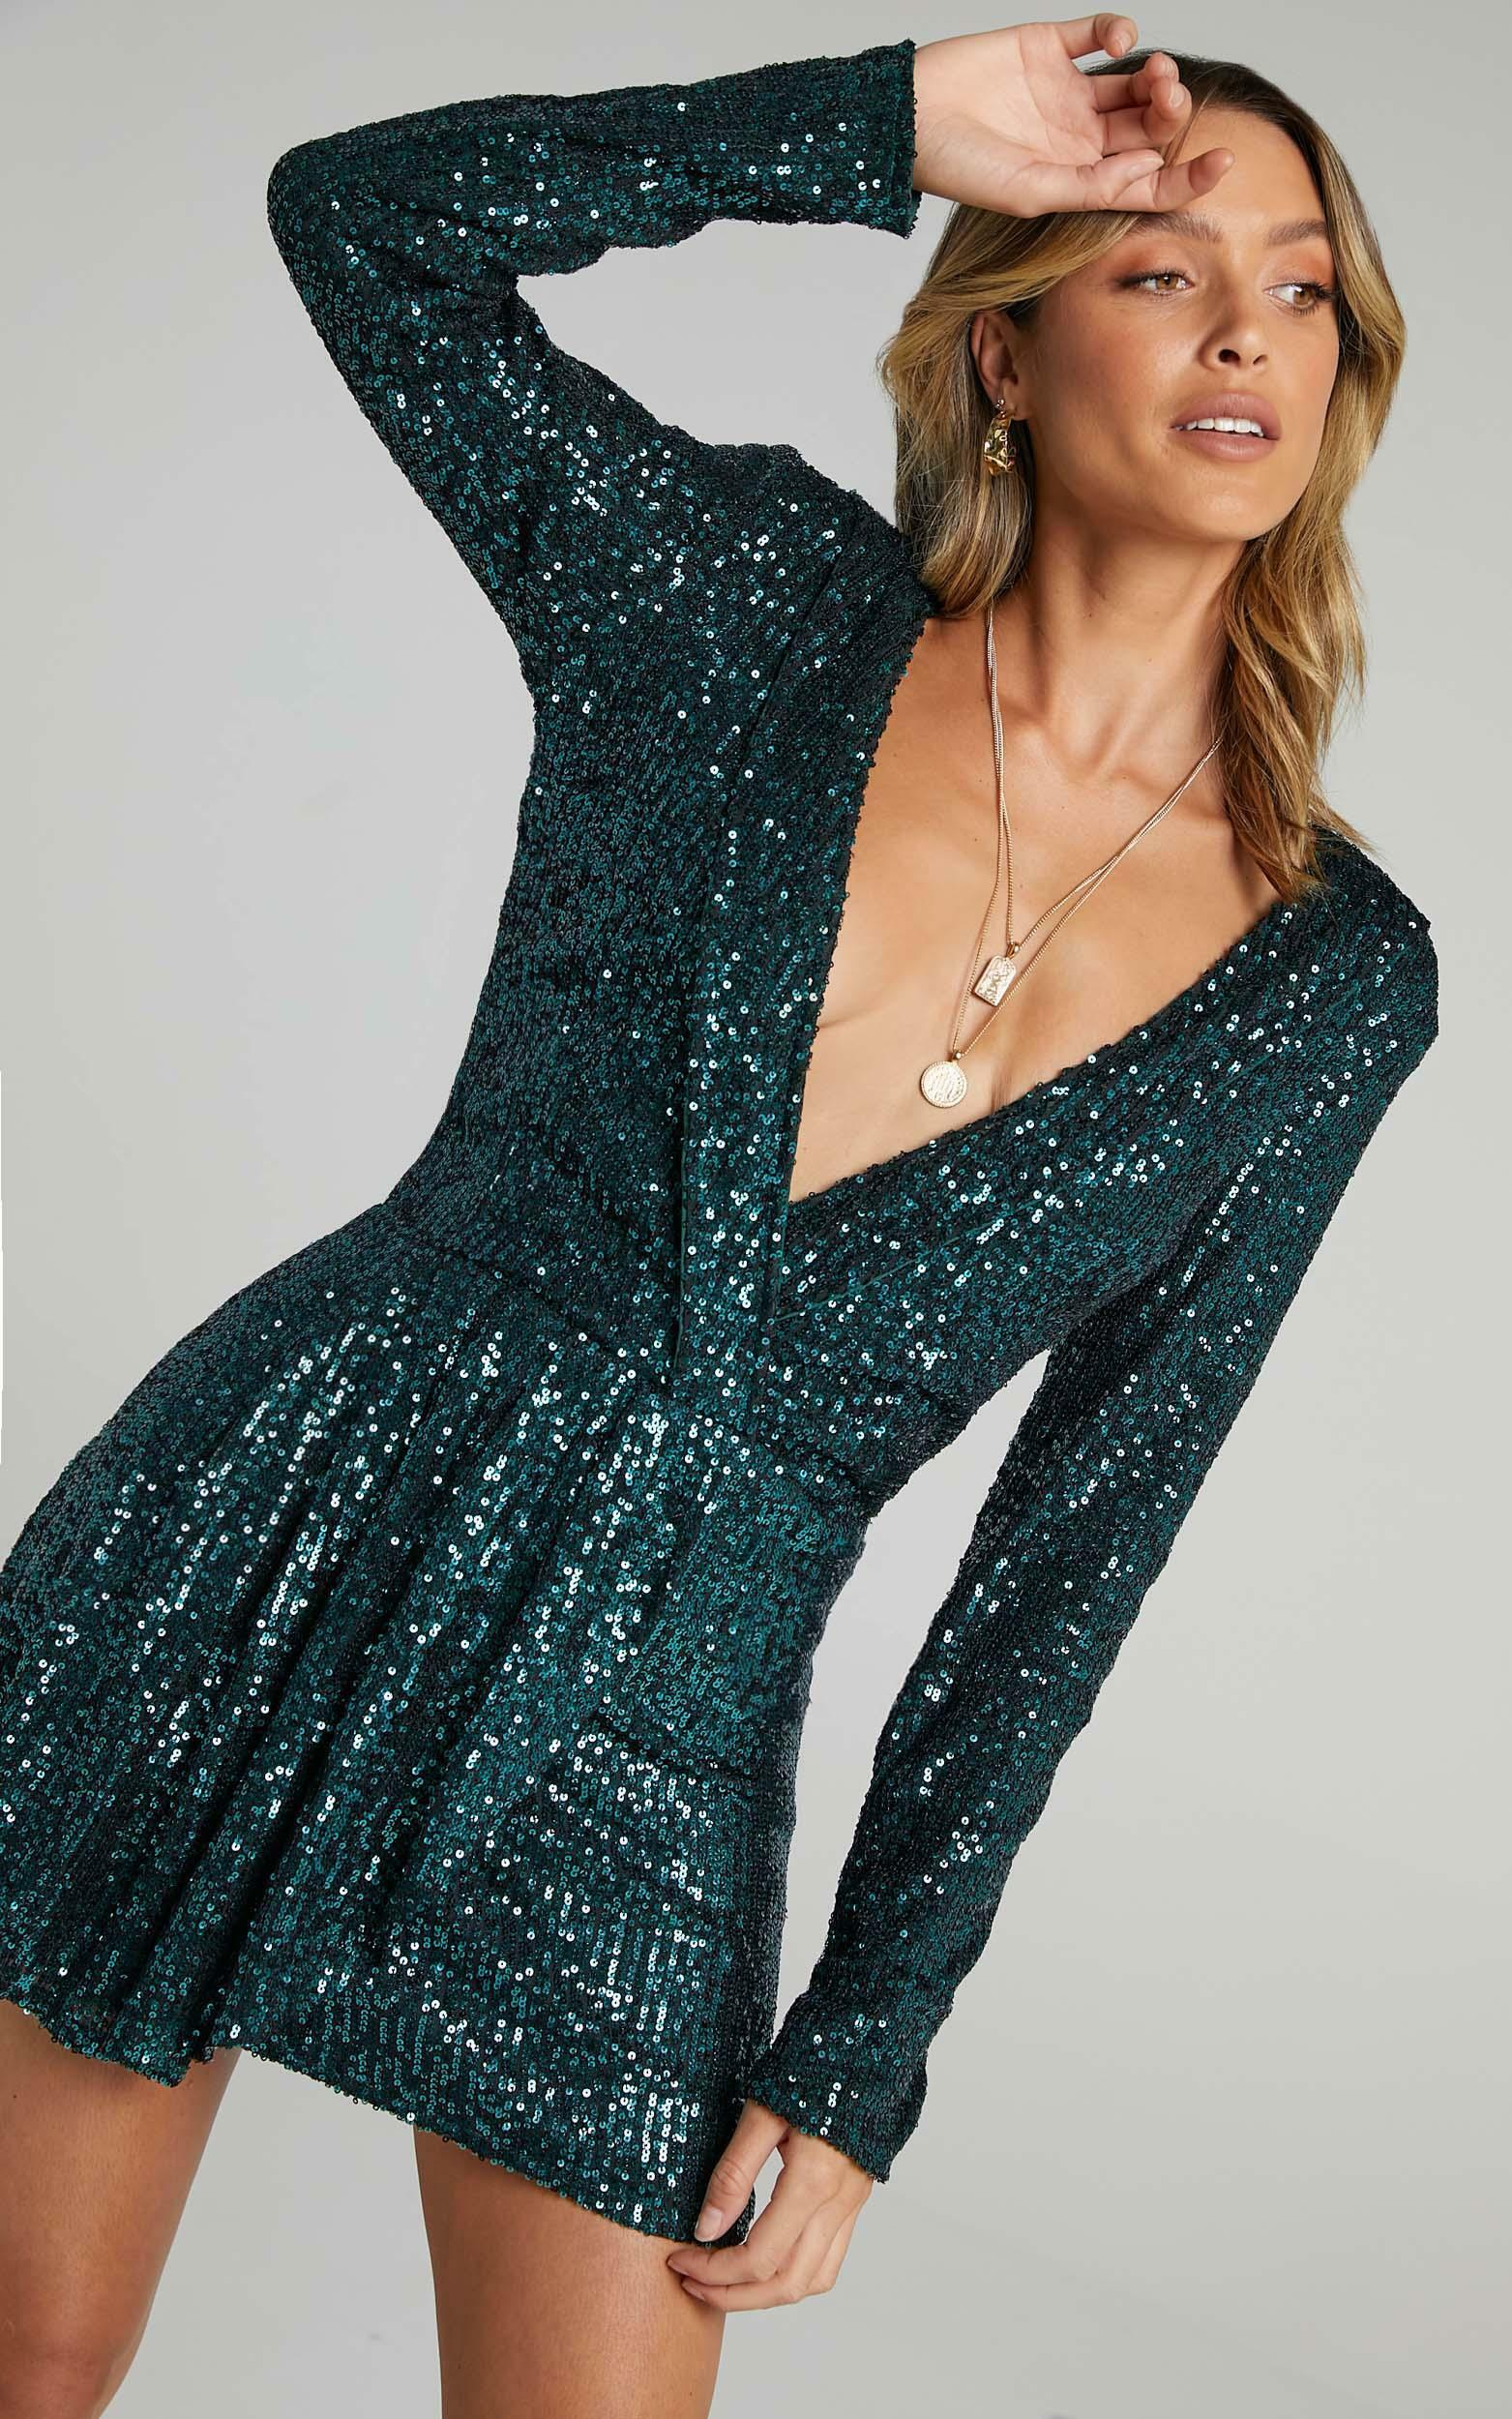 Lioness - Make Your Move Mini Dress in Teal - 6 (XS), Blue, hi-res image number null